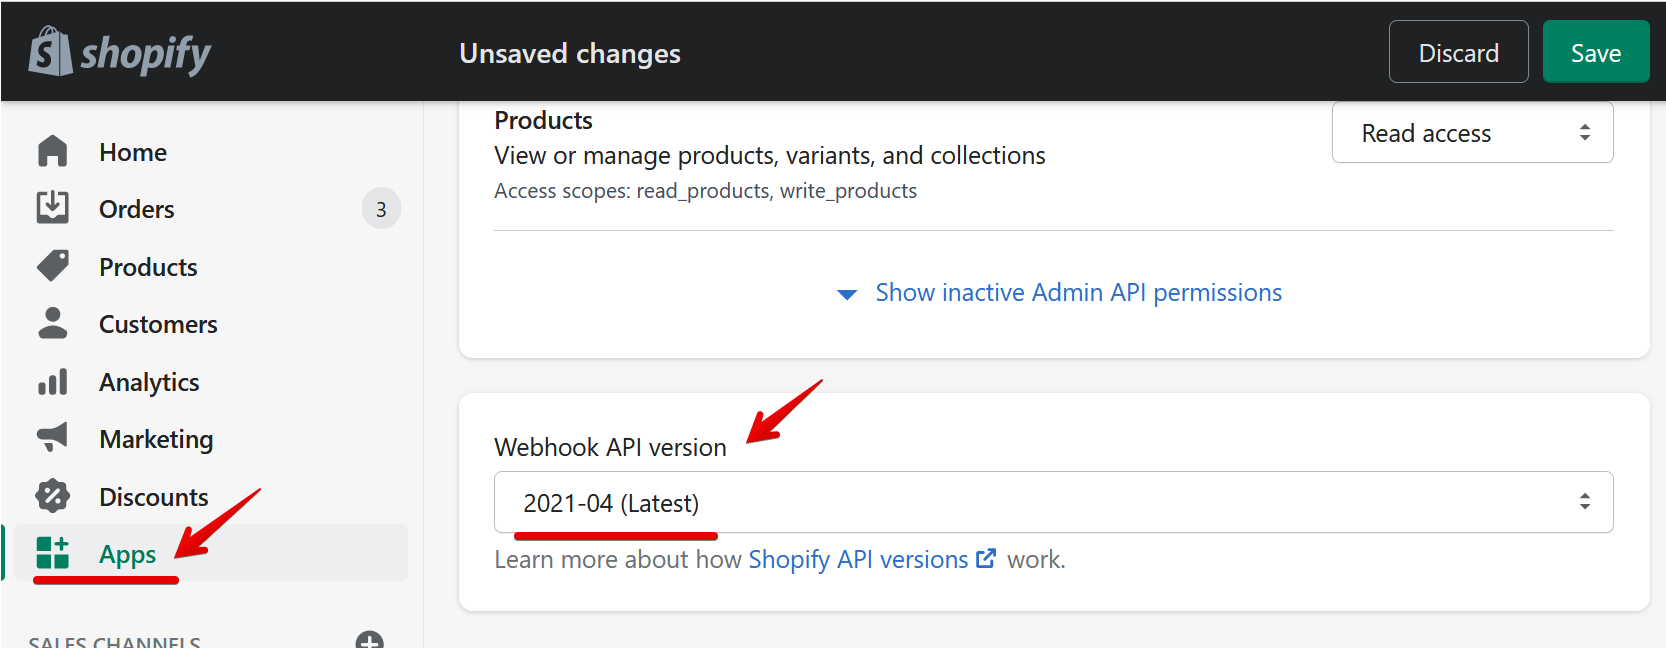 Update to the latest Webhook API version